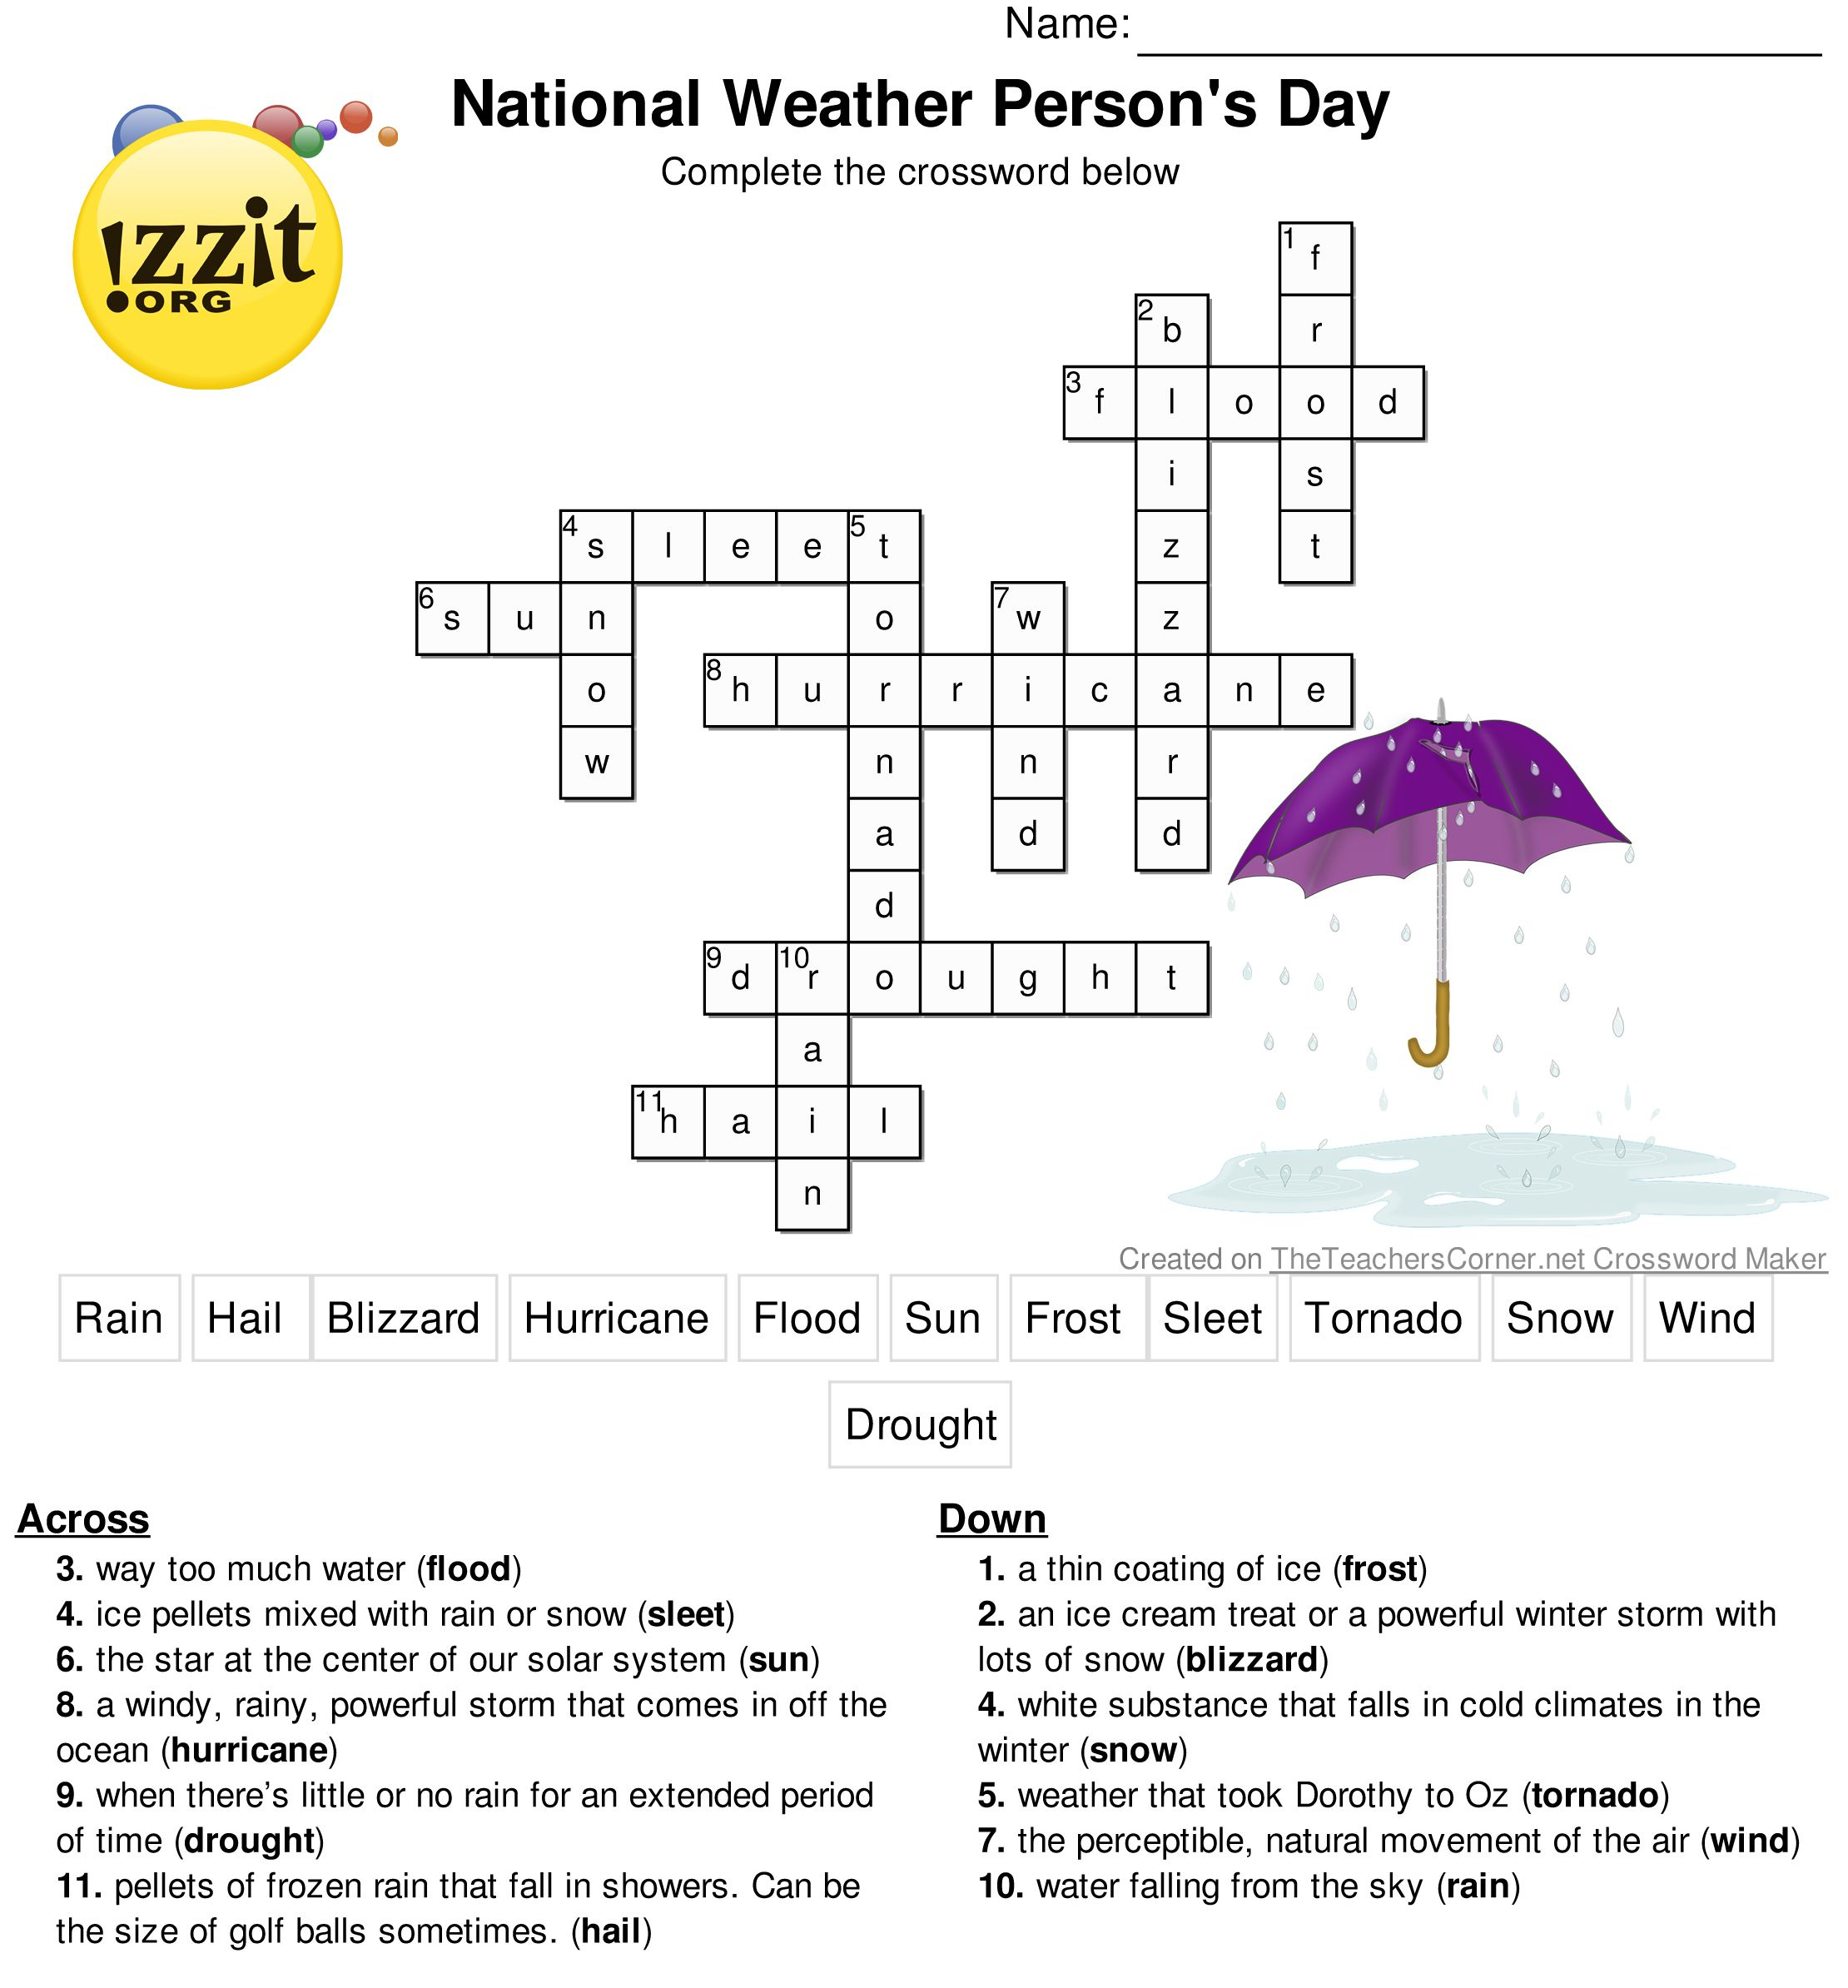 Here Is The Answer Key For The Printable Crossword Puzzle For - Free Printable Crossword Puzzle #7 Answers